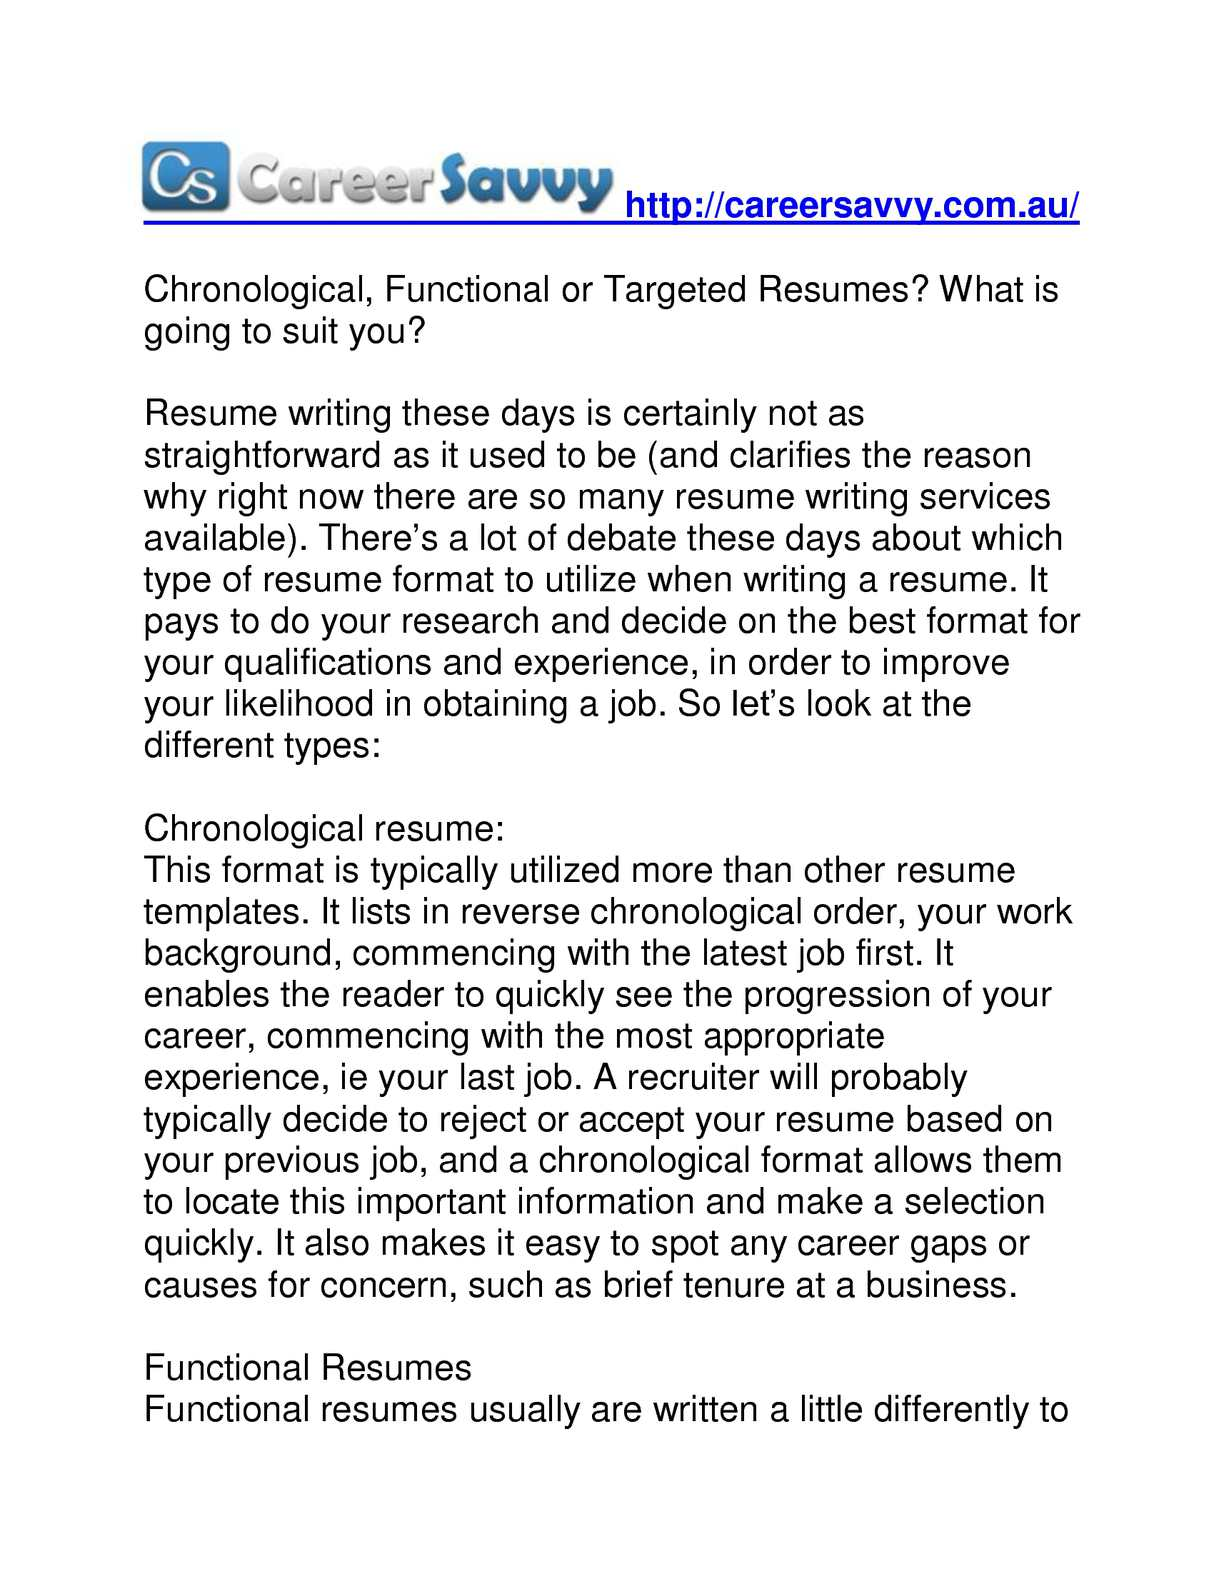 Calameo Chronological Functional Or Targeted Resumes What Is Going To Suit You